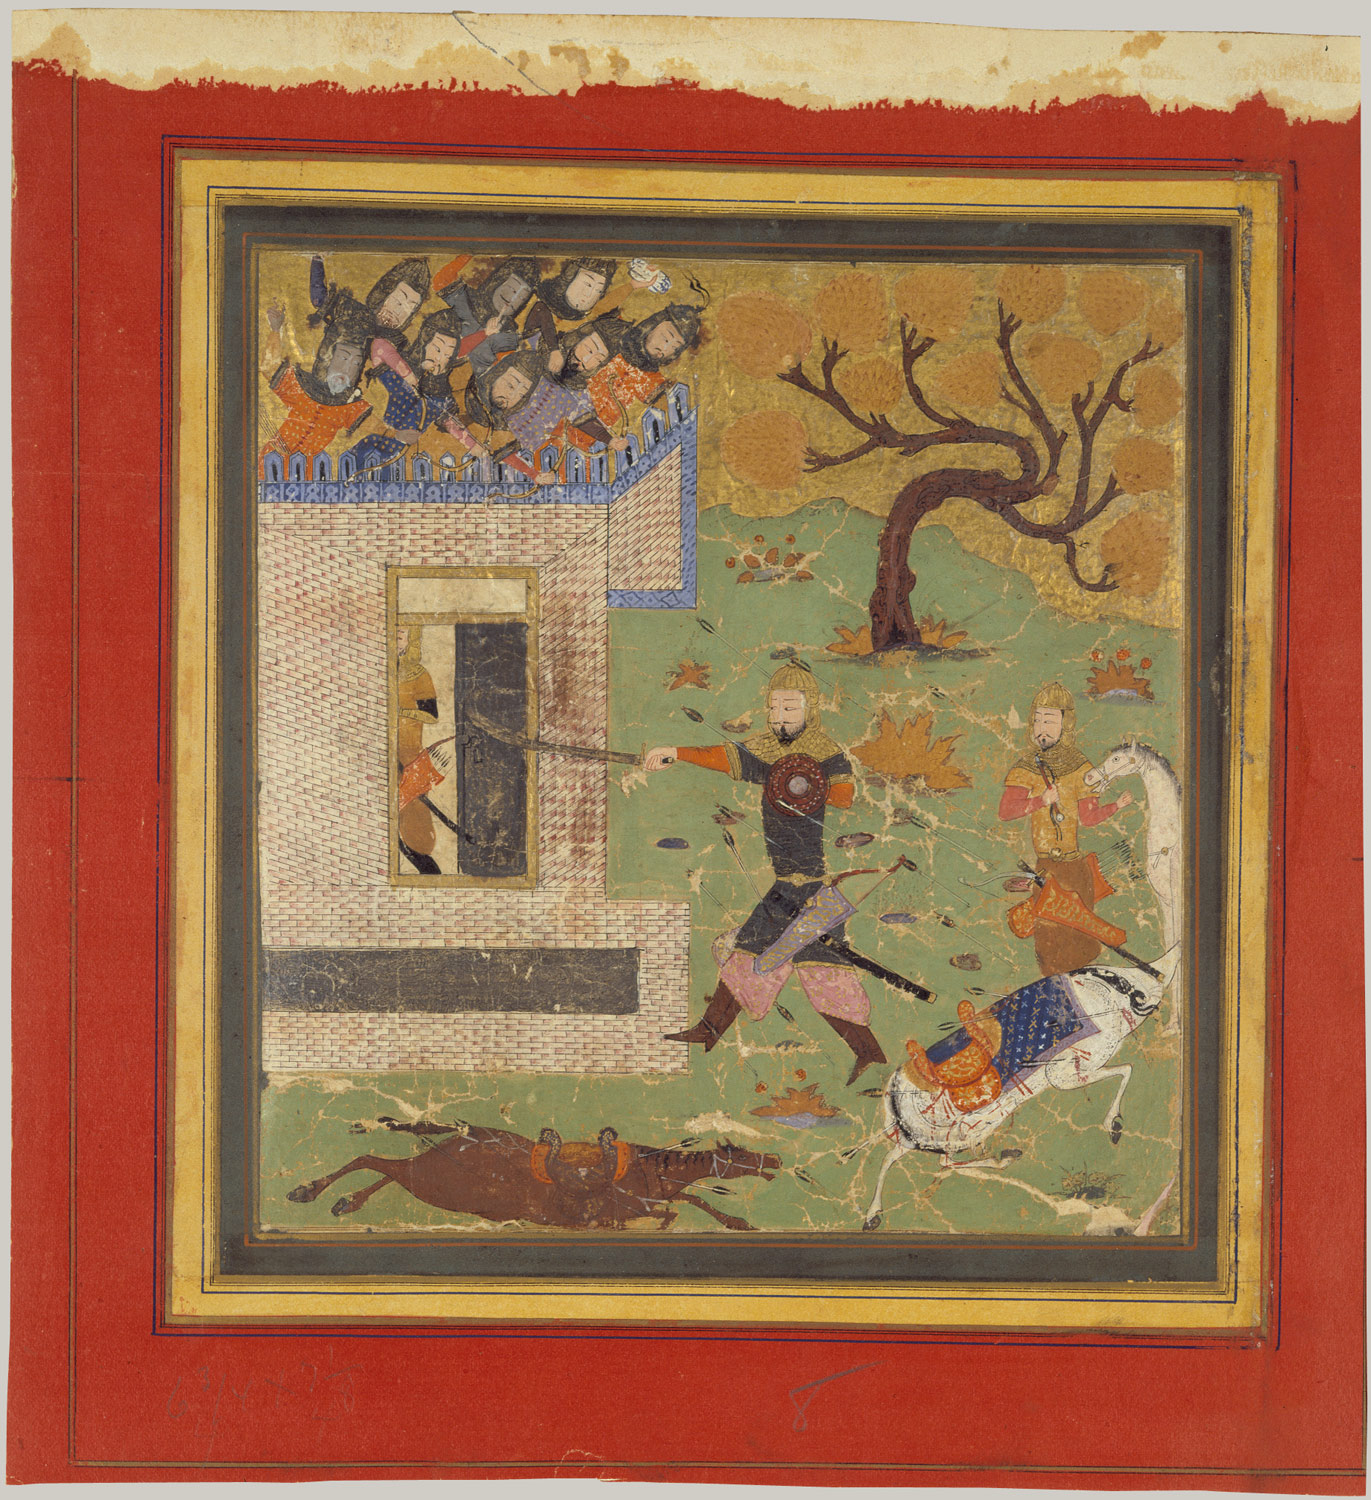 Bizhan Forces Farud to Retreat into his Fort, Folio from a Shahnama (Book of Kings)